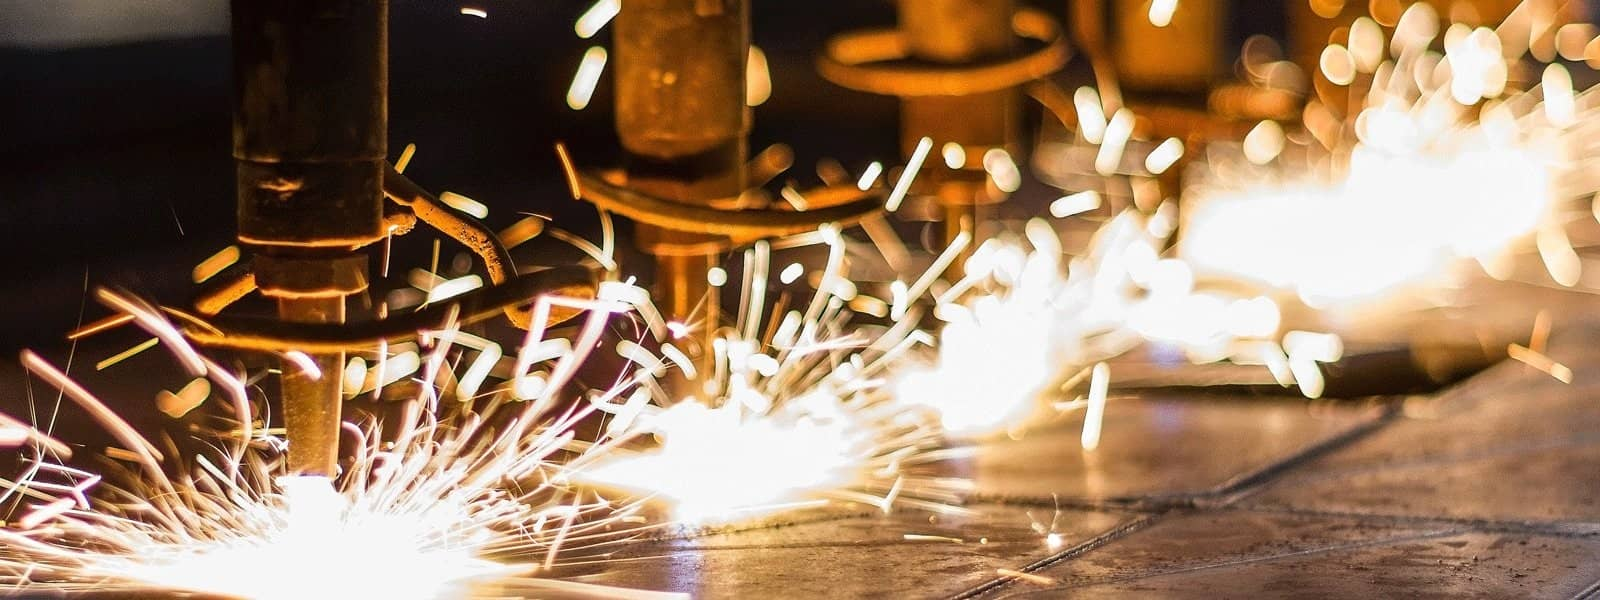 Mechanical engineering sparks